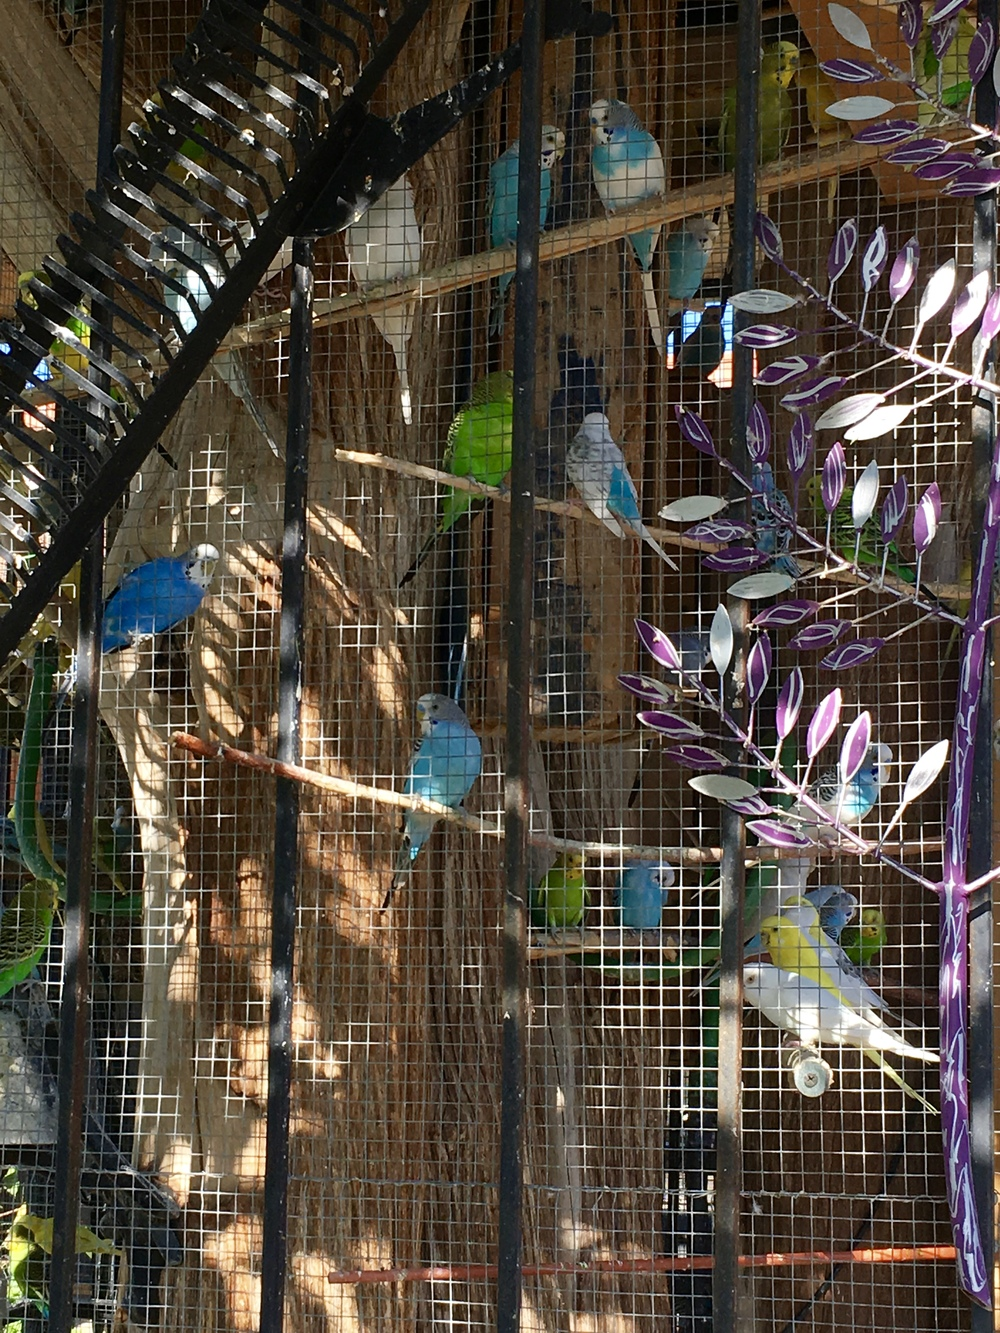 This is one of several outdoor aviaries at a house in Dunbar Spring.